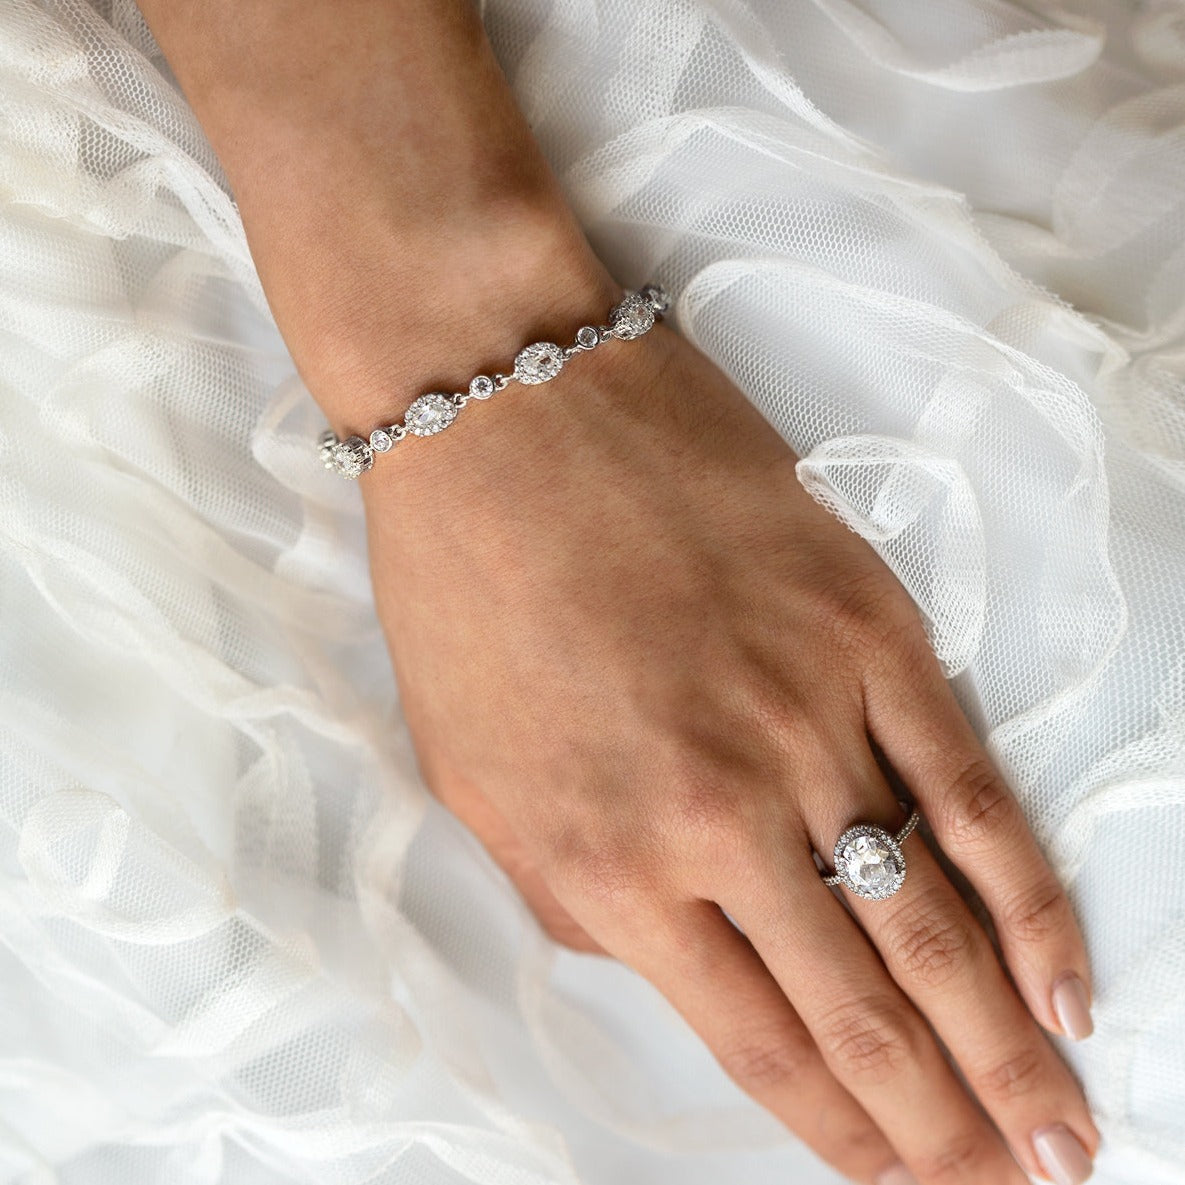 Ovali Crystal Tennis Bracelet - Amy O. Bridal